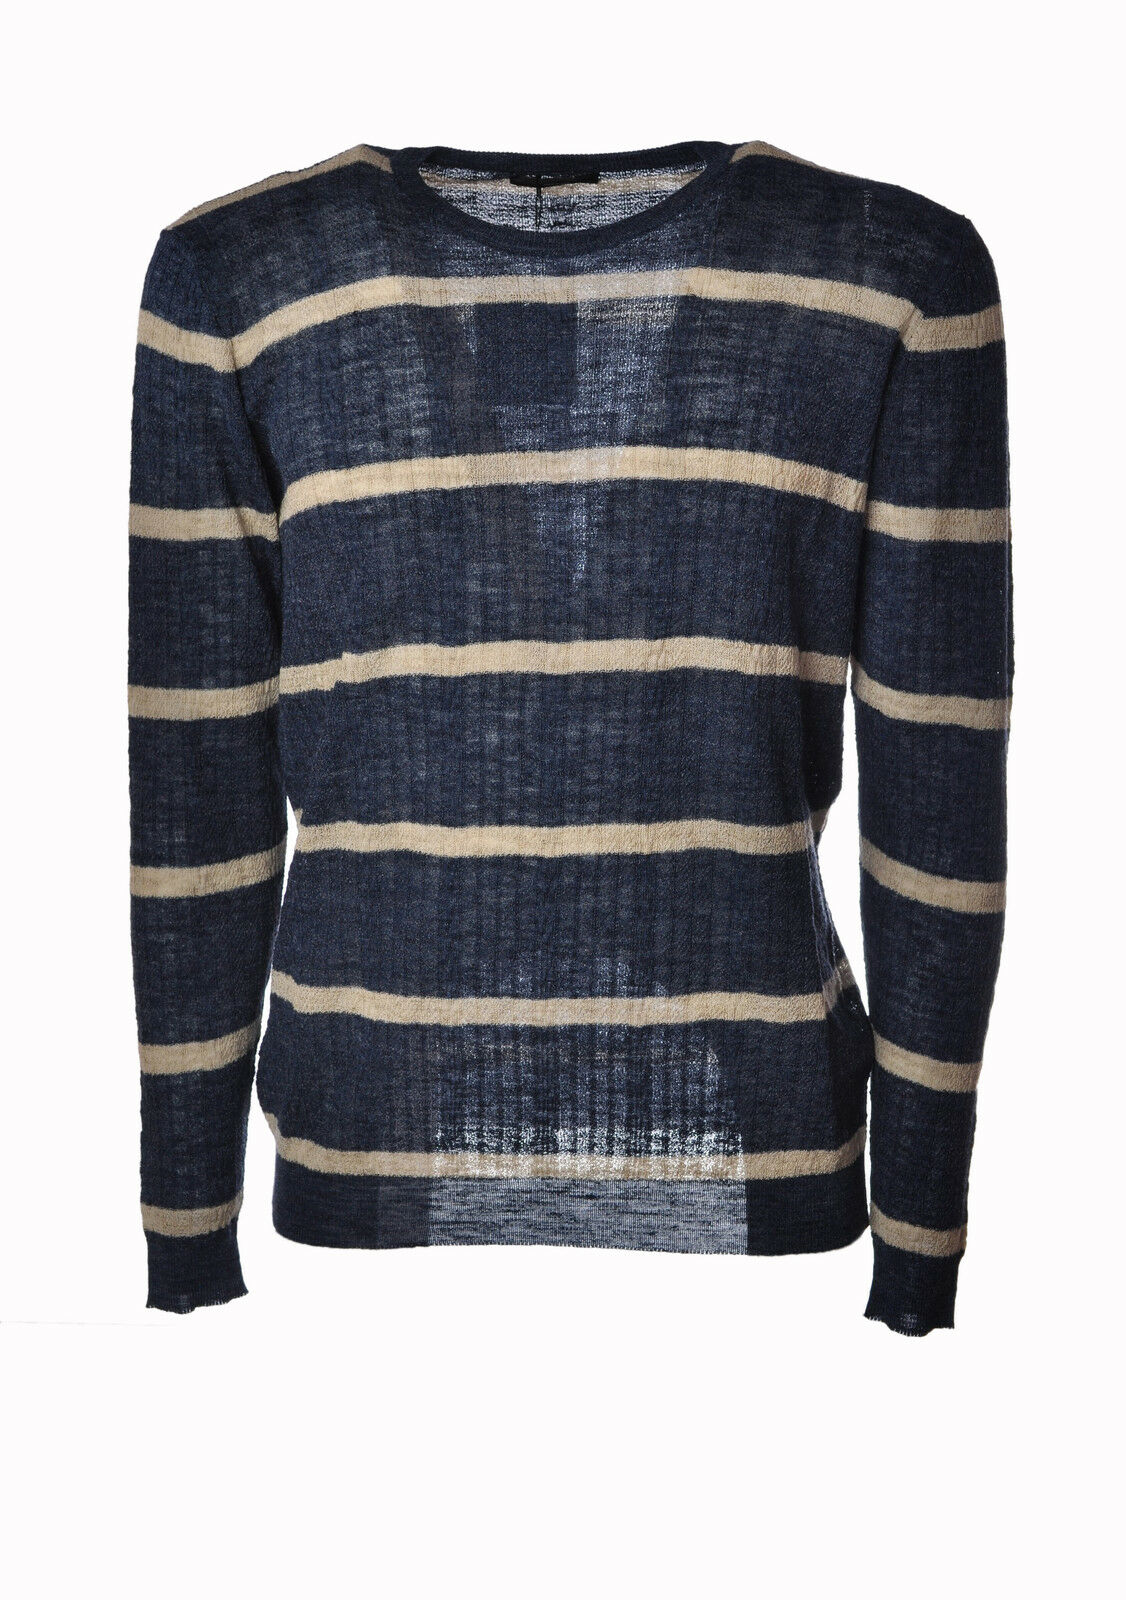 Roberto Collina  -  Sweaters - Male - bluee - 3213615A184137